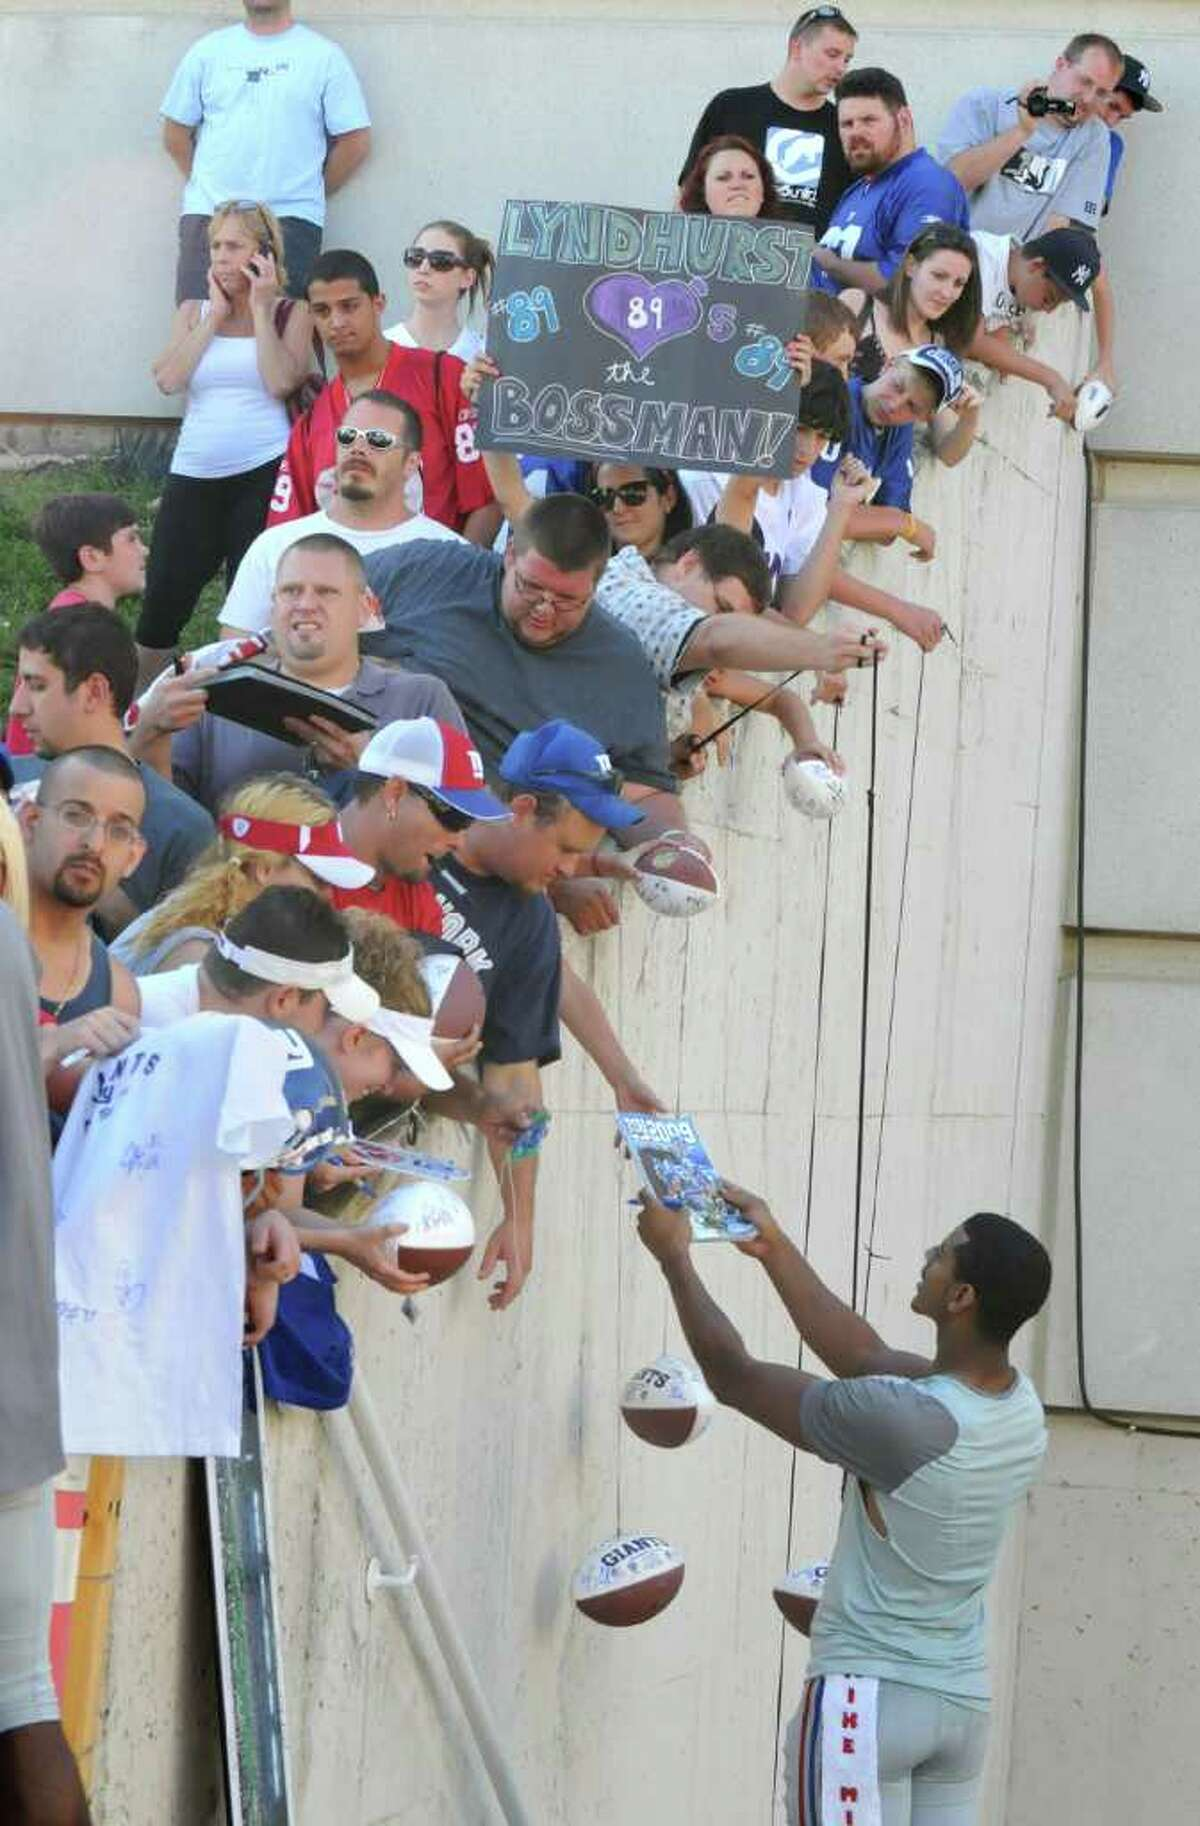 New York Giants football player Michael Johnson signs autographs after a training camp session at UAlbany in Albany, NY on August 6, 2010. Today was